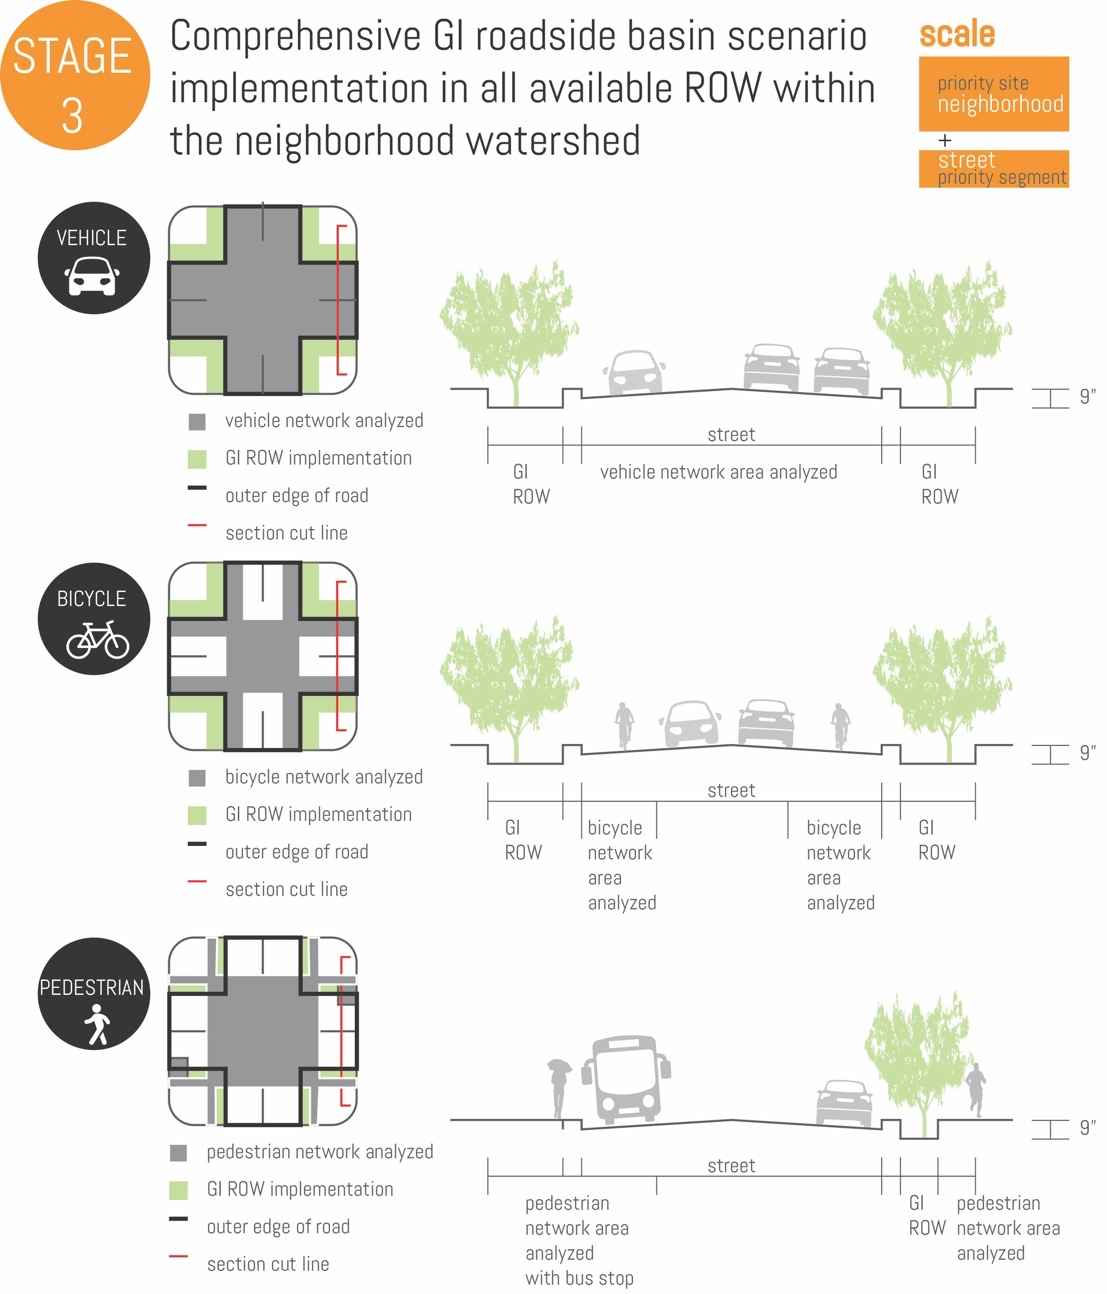 Diagrams of roads showing cars, trees, and pedestrians, with roadside basins for water drainage